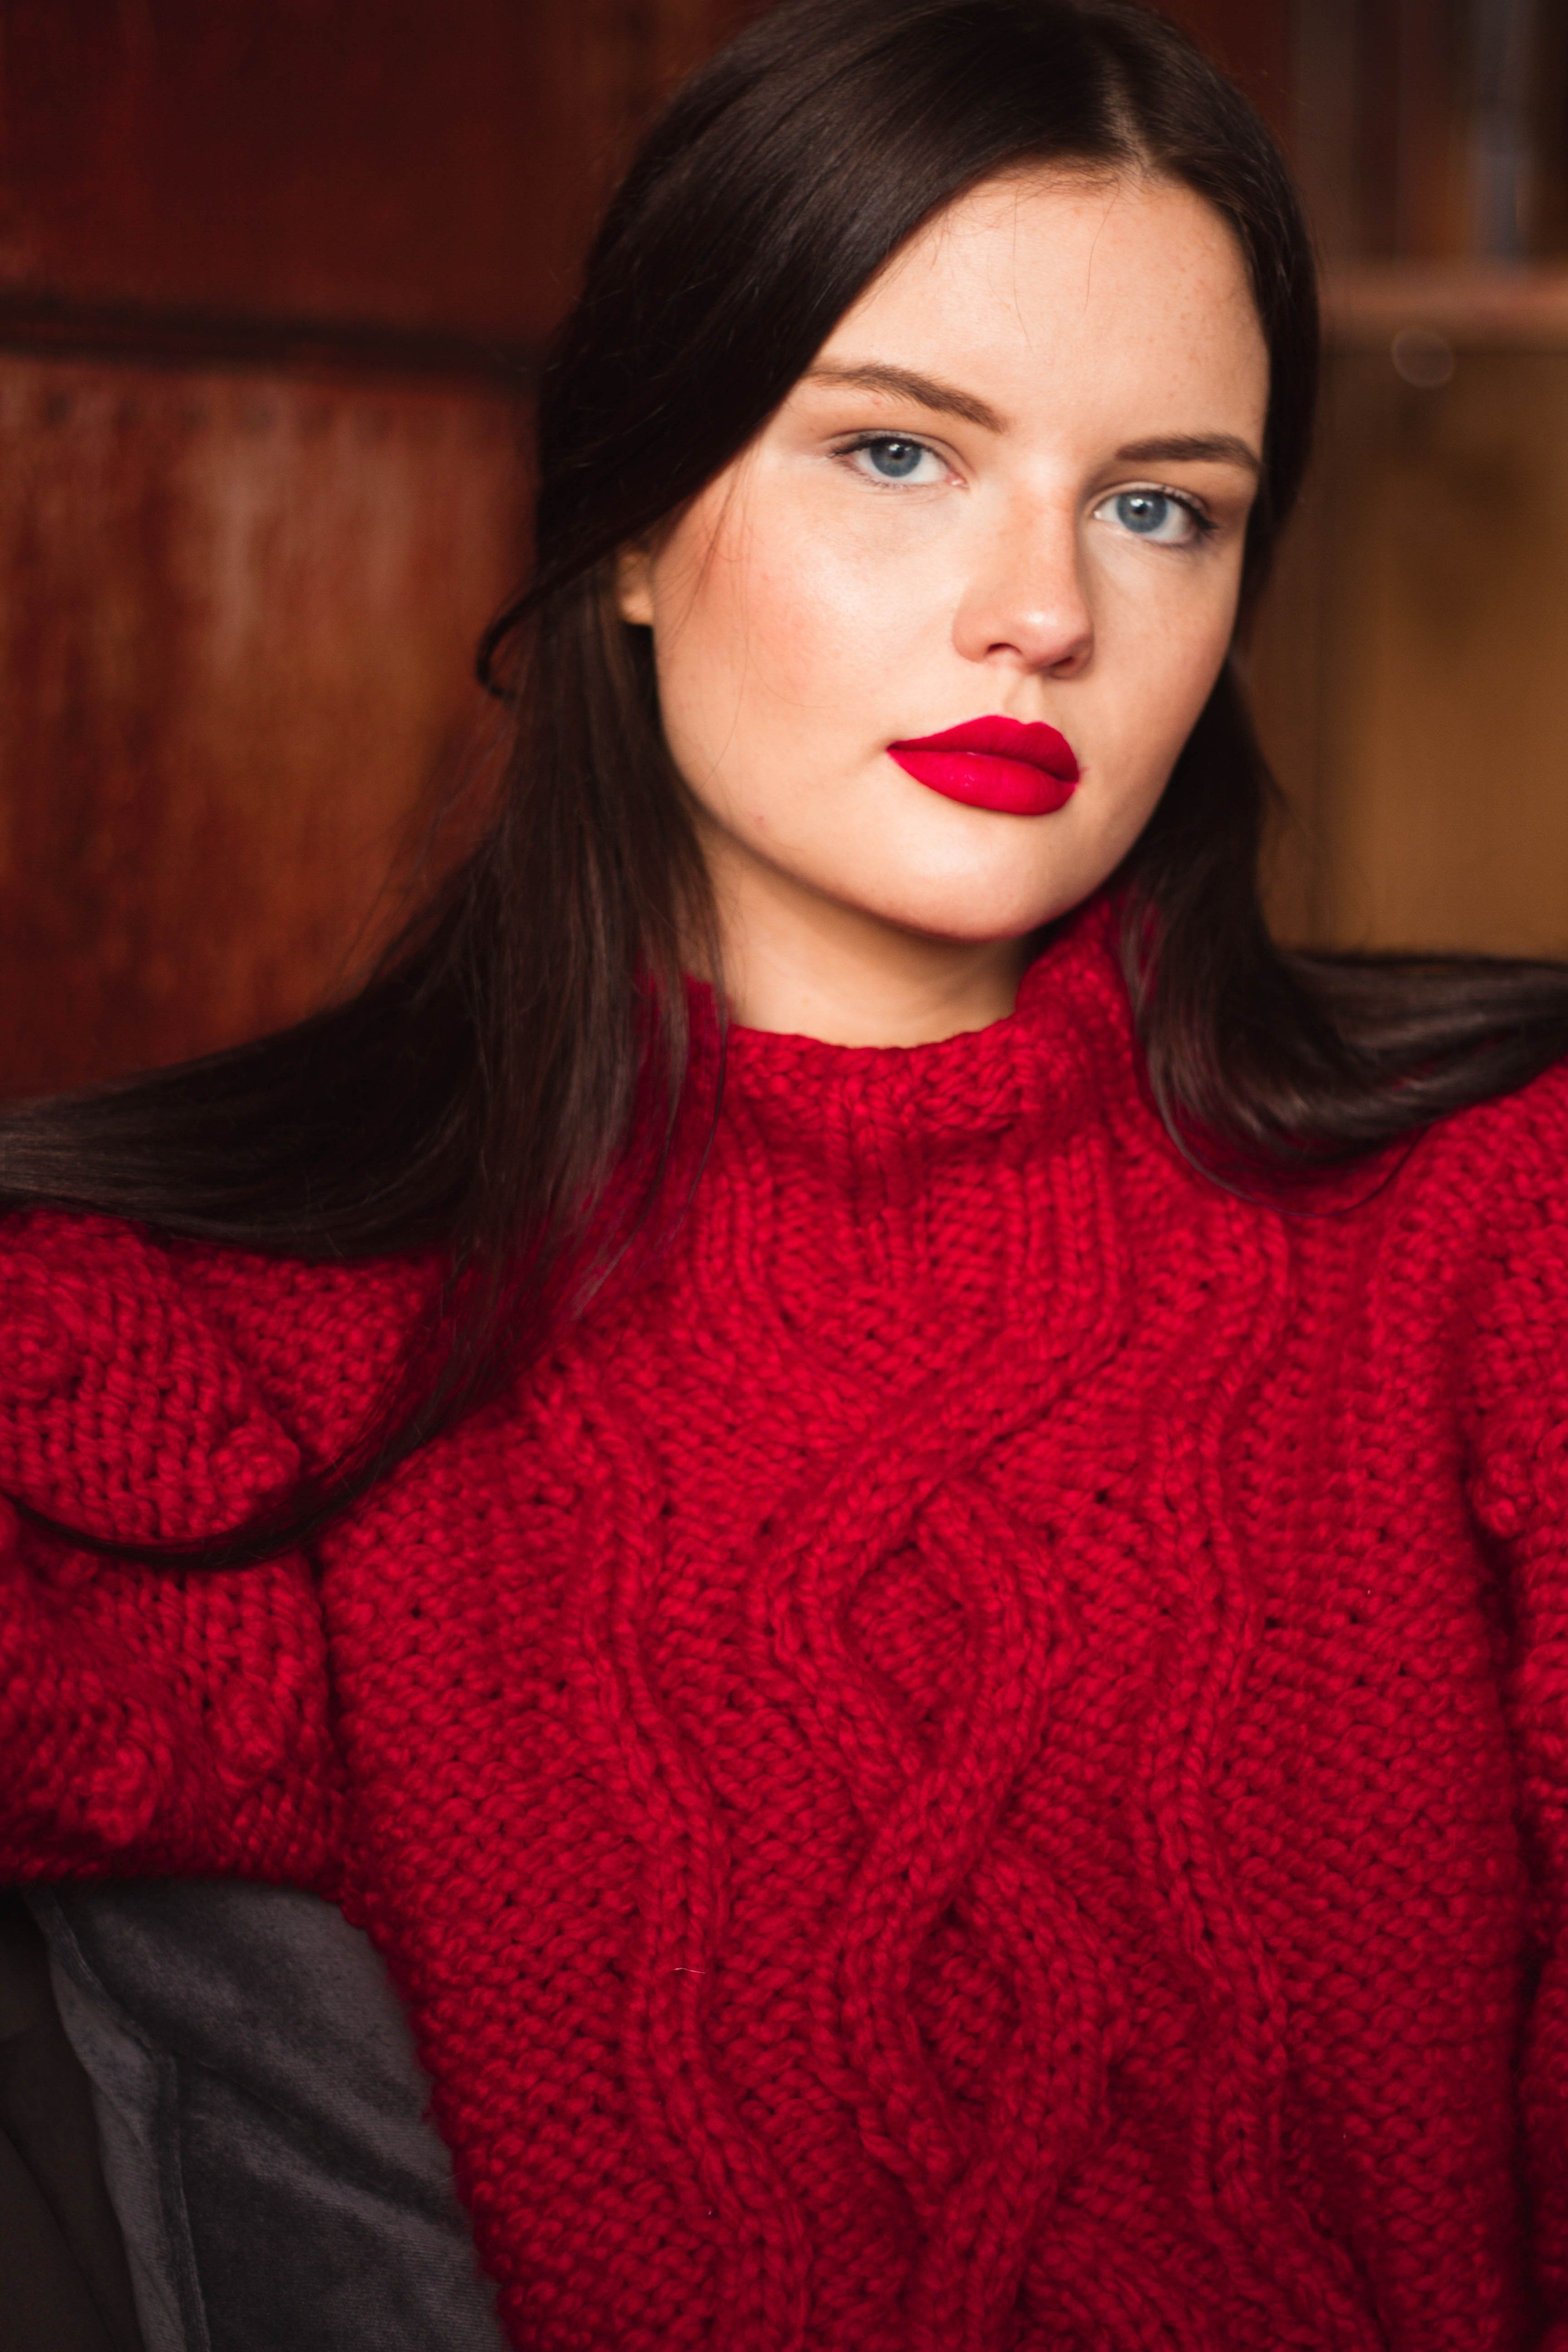 The Big Red Jumper Handknit Super Chunky Sweater From Debbie